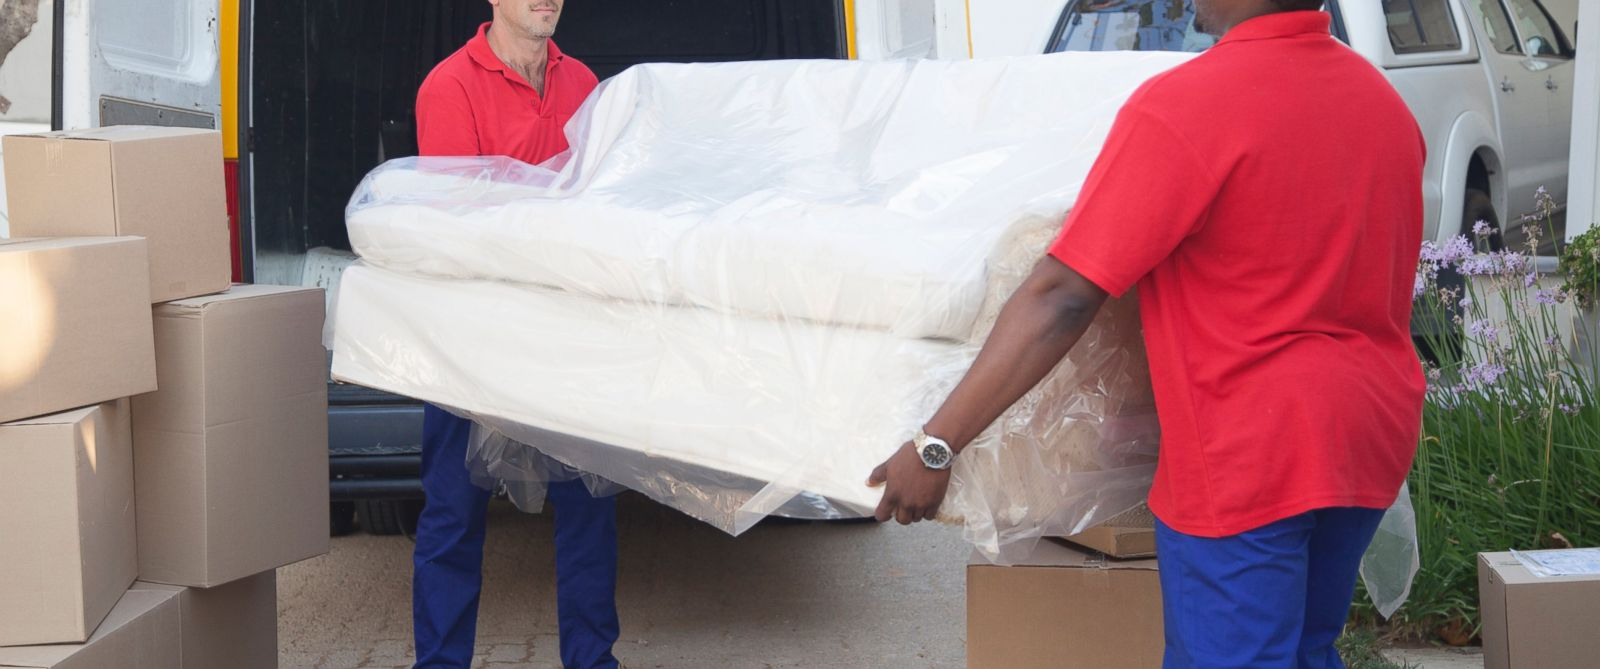 Paying for the furniture delivery man s mistake abc news for Affordable furniture delivery